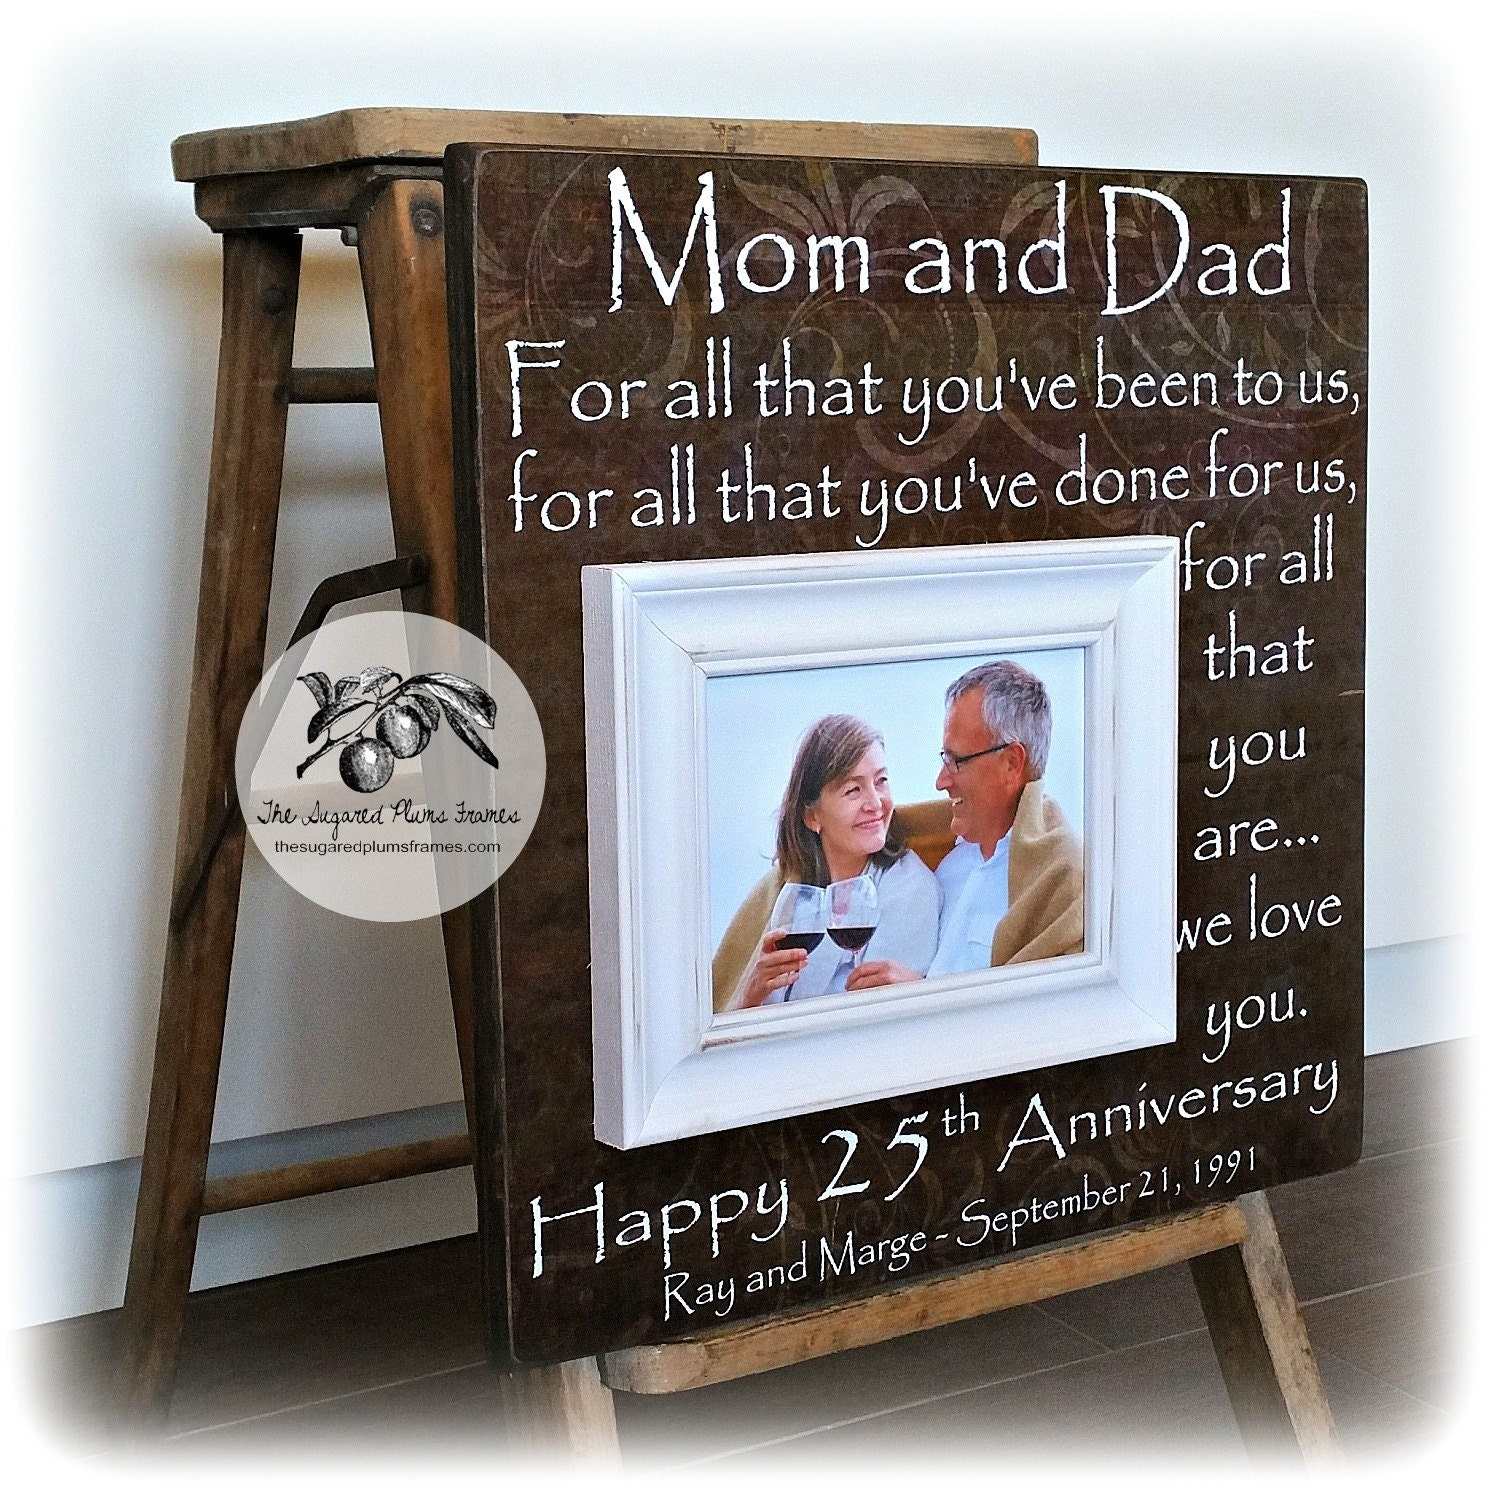 Silver Wedding Anniversary Gifts For Husband: 25th Anniversary Gifts For Parents Silver Anniversary Gift